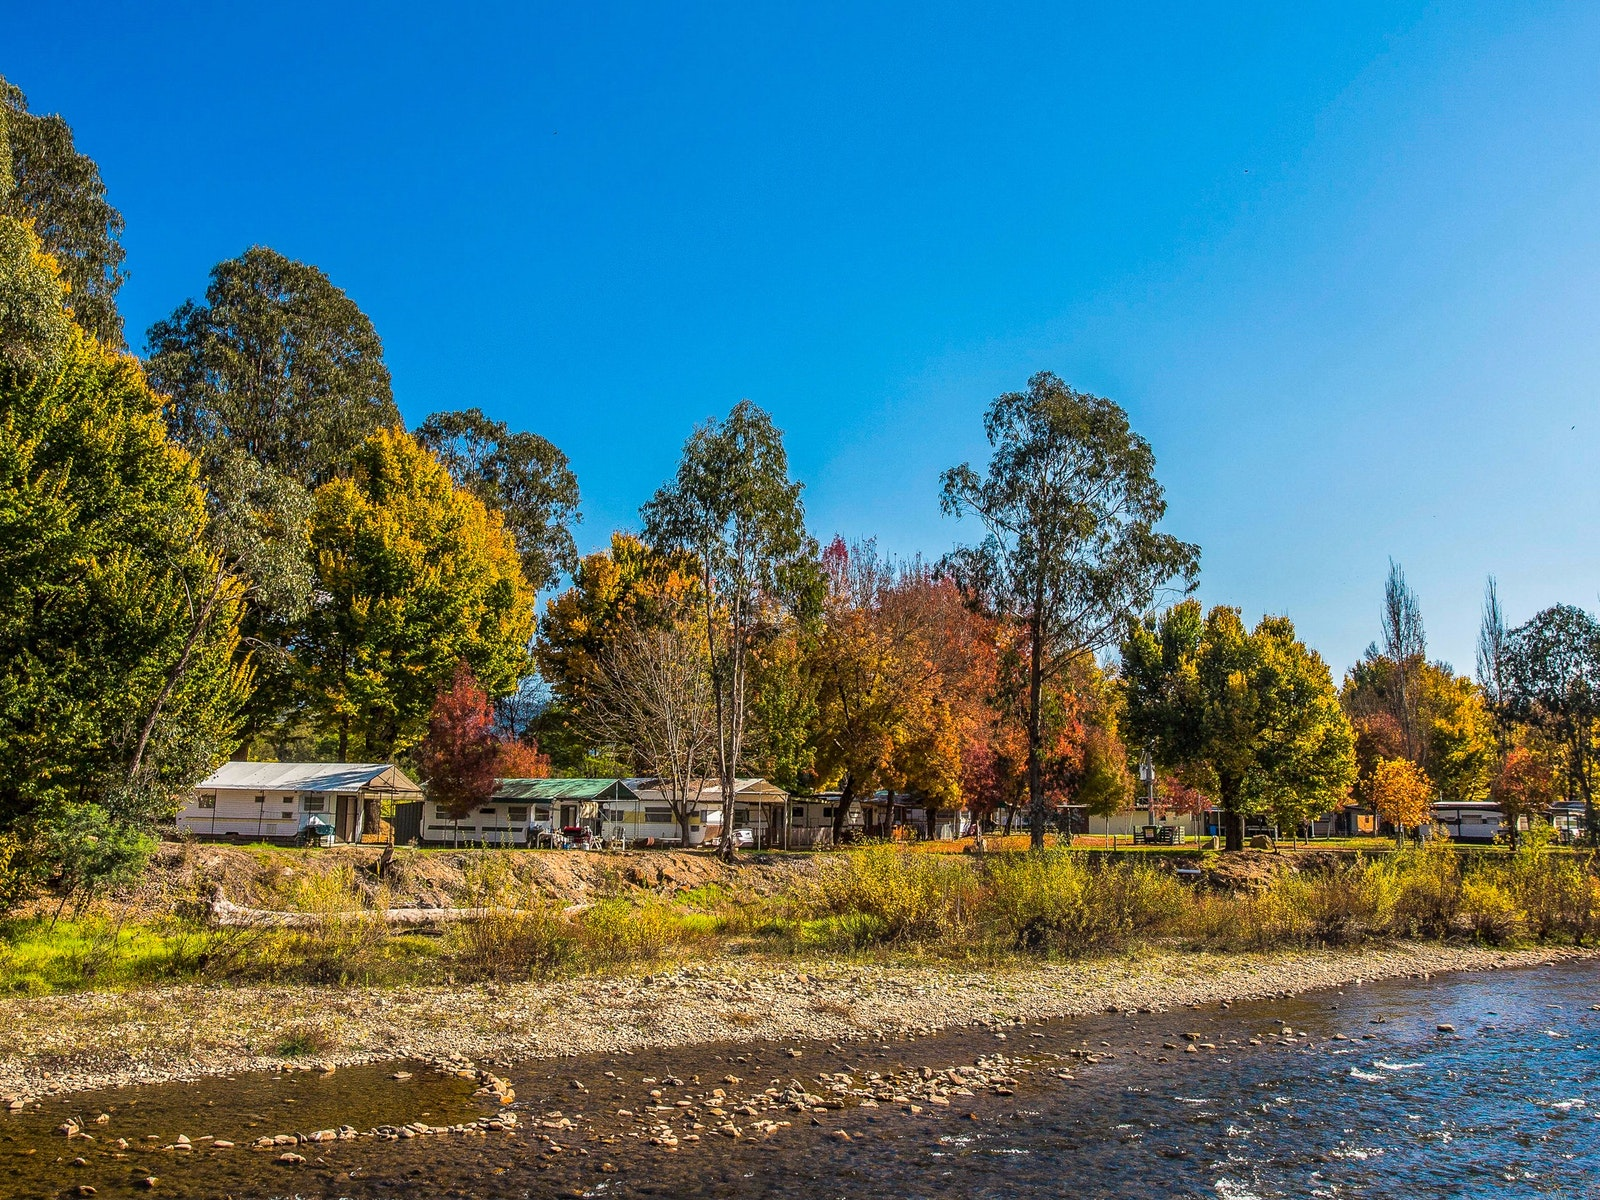 Park next to the Ovens River